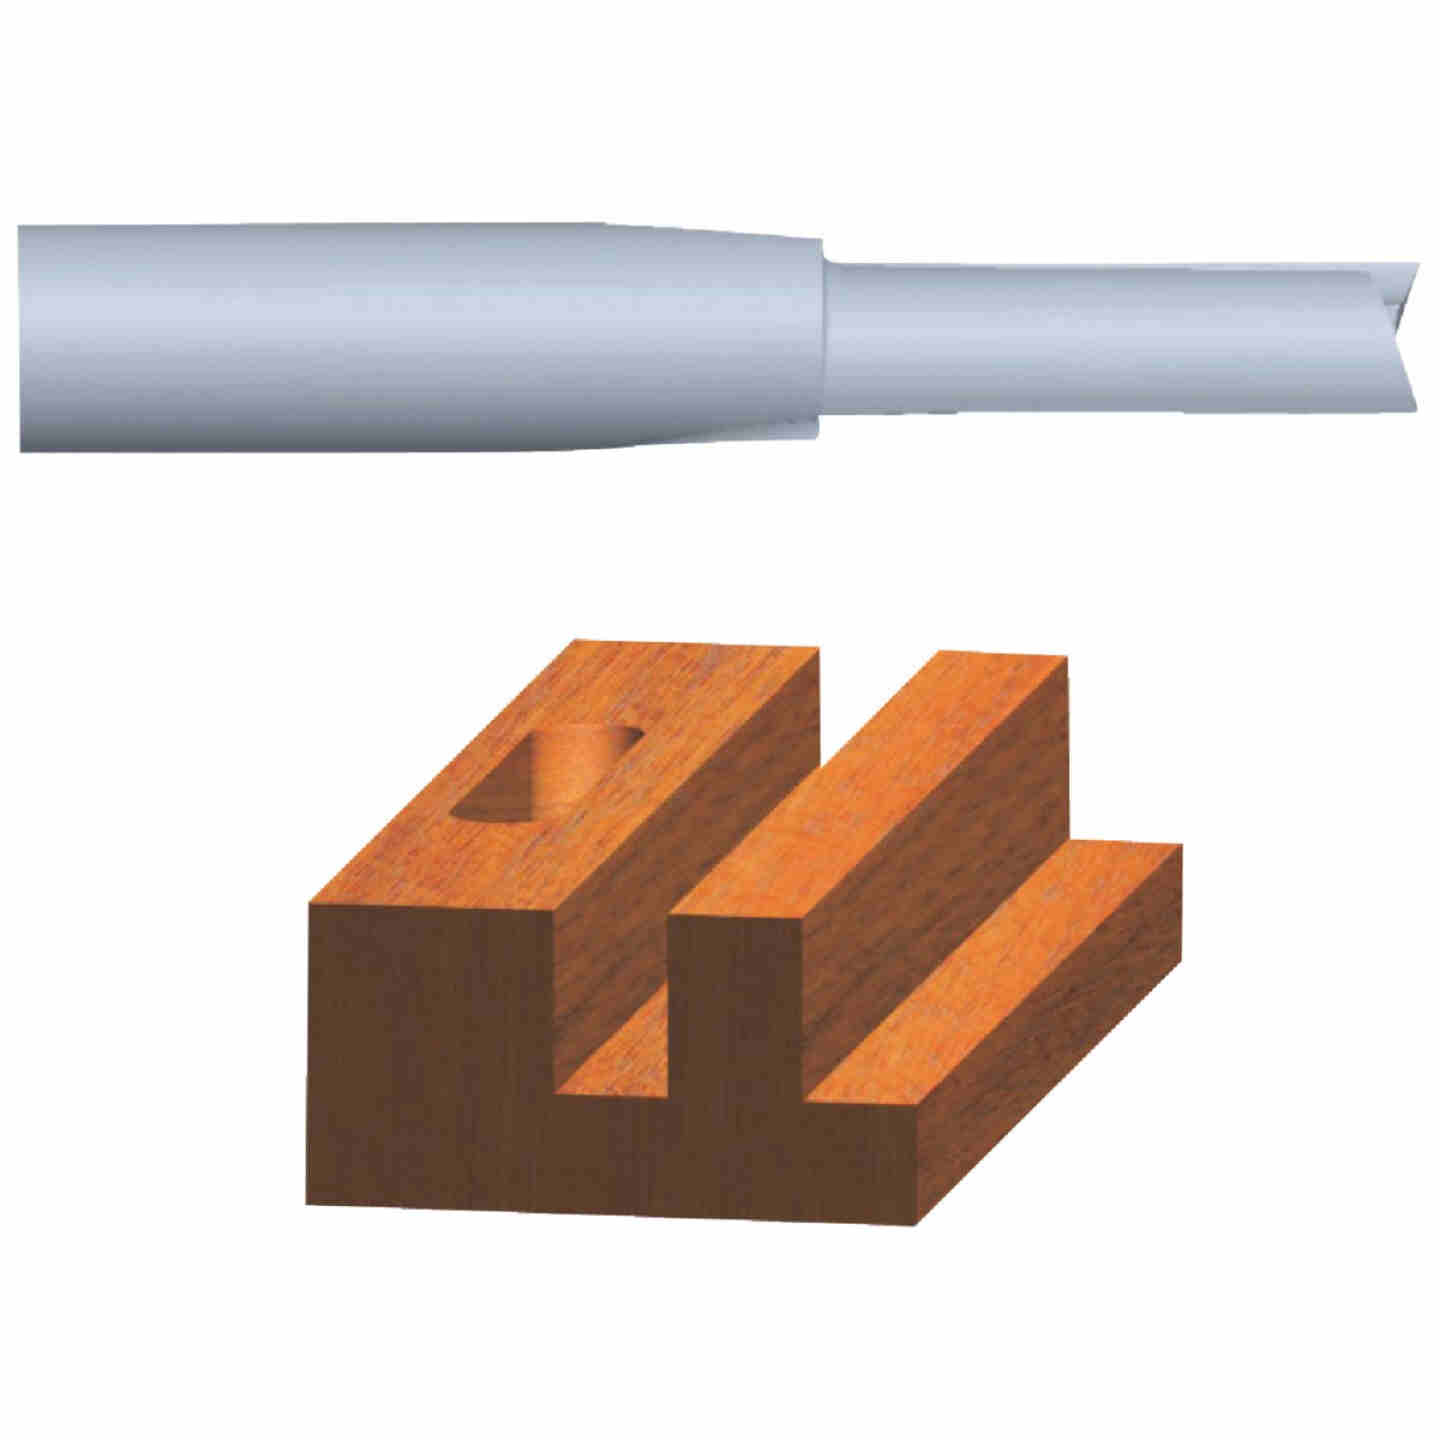 Vermont American Carbide Tip 1/8 In. Straight Bit Image 1